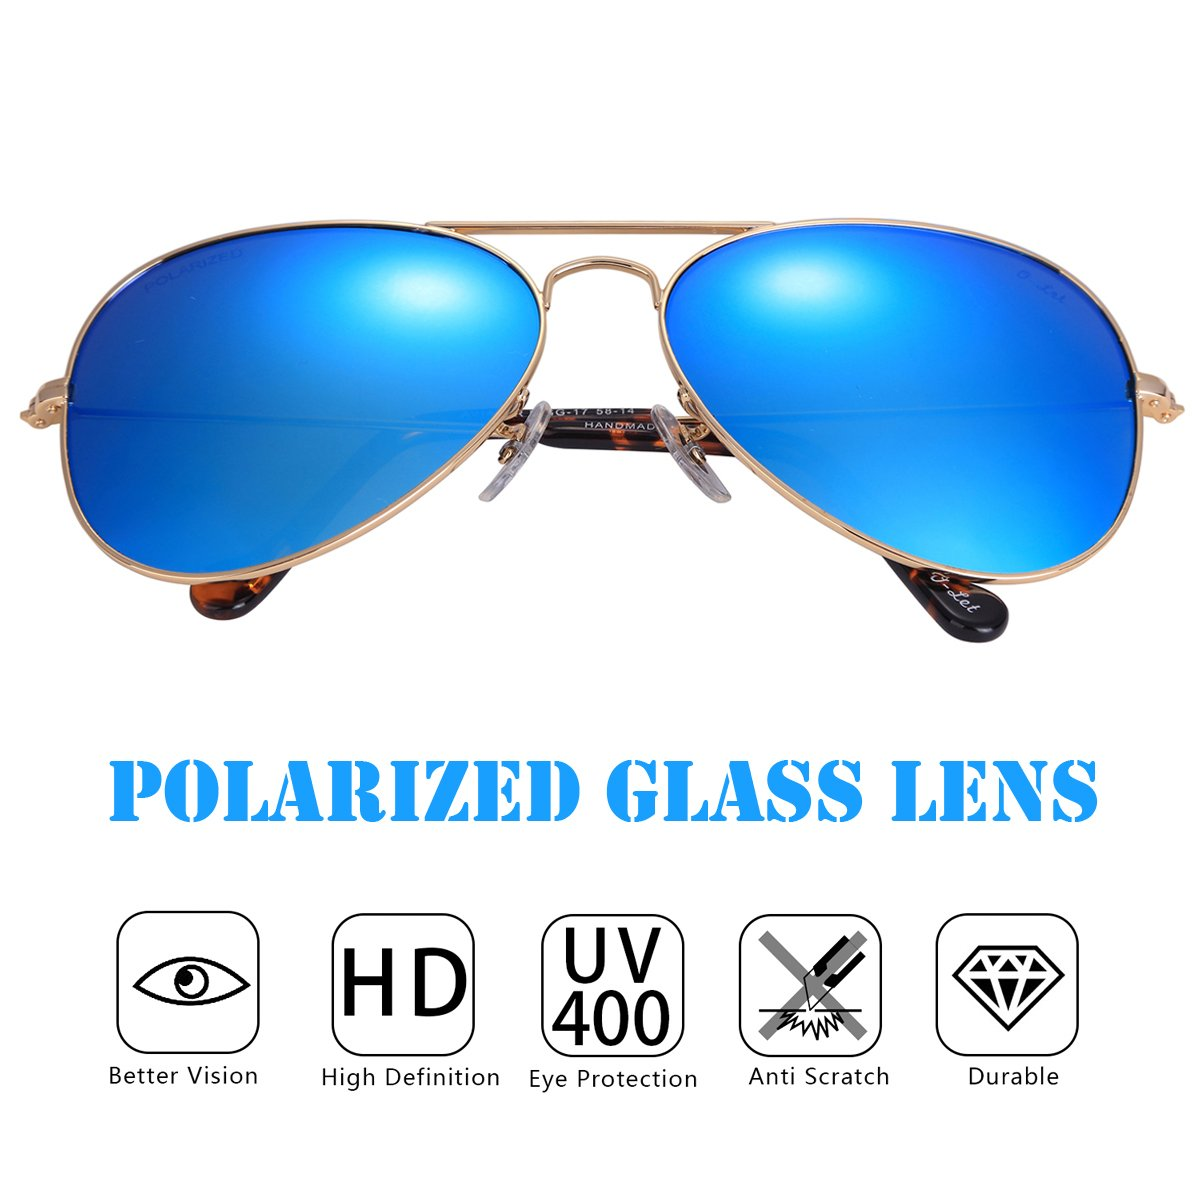 7d62dcc7bb2 Amazon.com  O-LET Polarized Aviator Sunglasses for Women Men  Cycling Fishing with Glass Polarized Lens